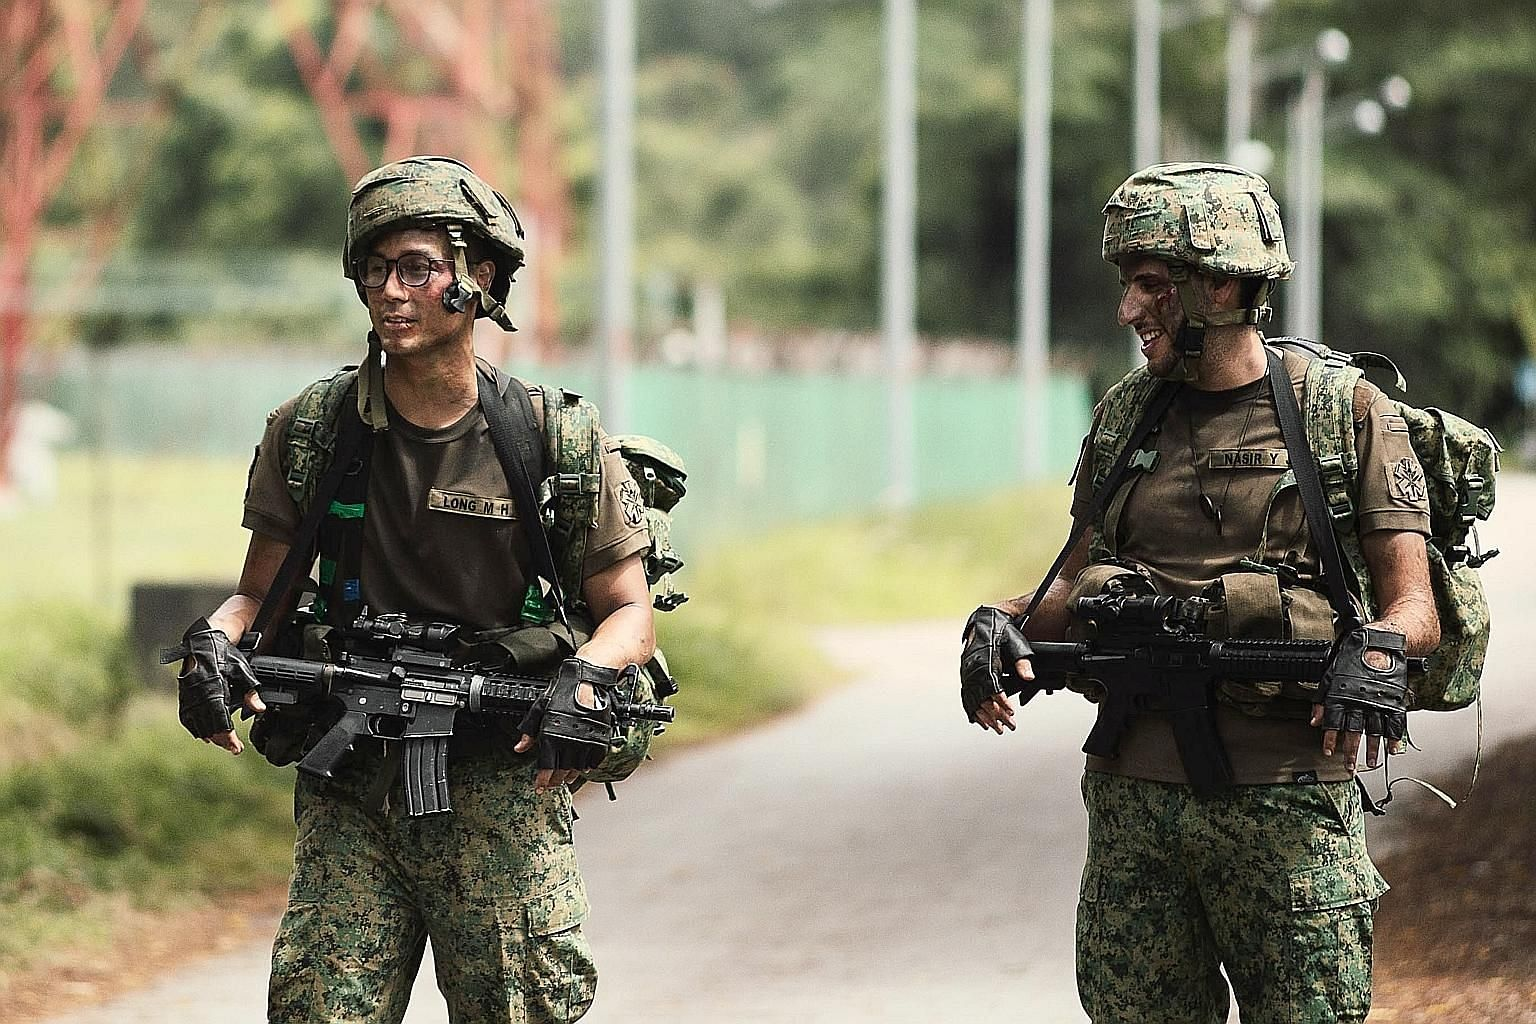 Singapore actor Andie Chen (left) and Nuseir Yassin, the vlogger known as Nas Daily, play soldiers in Chen's effects-heavy film about war, The Last Song. It is slated to be released next month and can be viewed on the Storeys website and Facebook pag